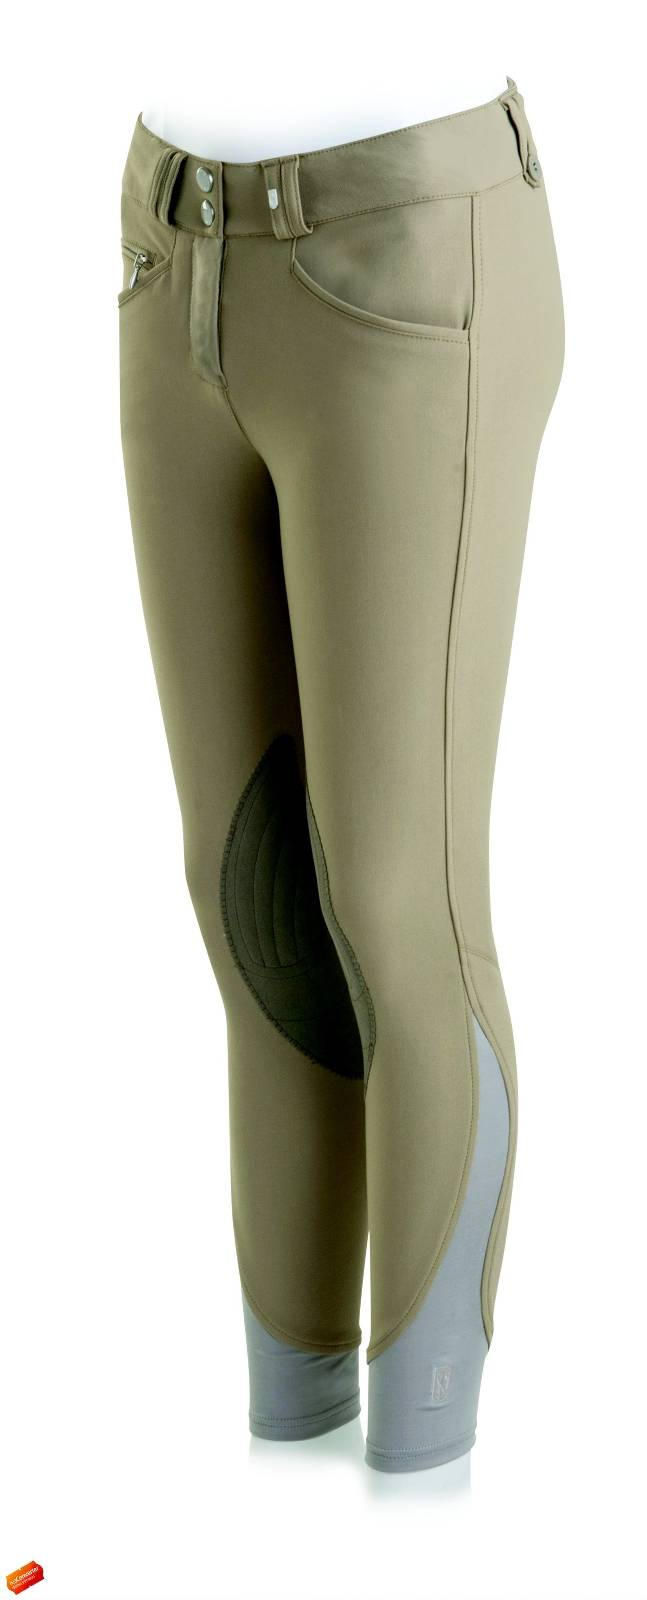 Outlet - Tredstep Argenta Breeches - Ladies, Knee Patch, 34 Regular, Tan